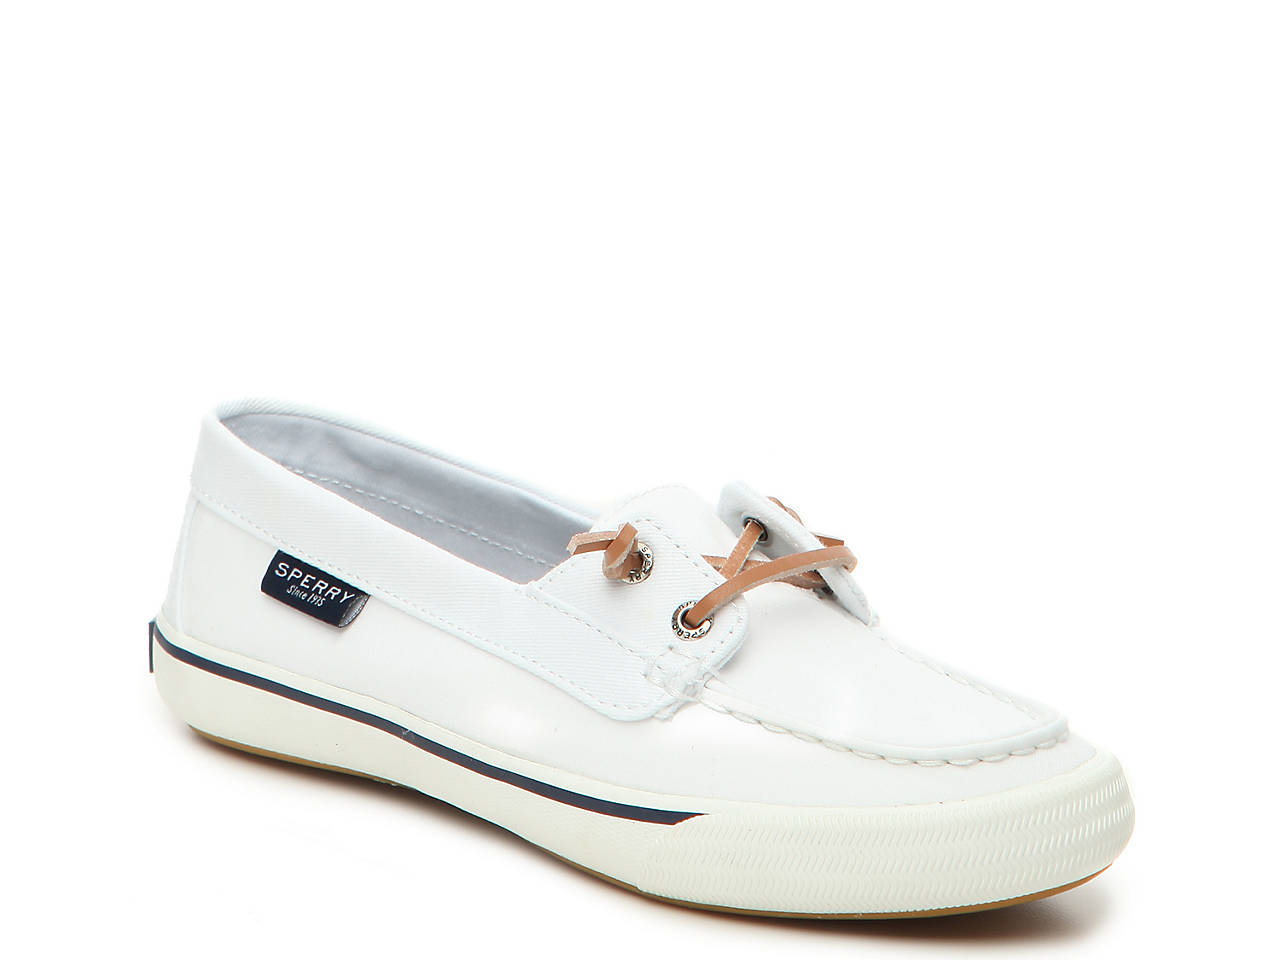 Sperry Top-Sider Lounge Away Boat Shoe Women s Shoes  441c003f7